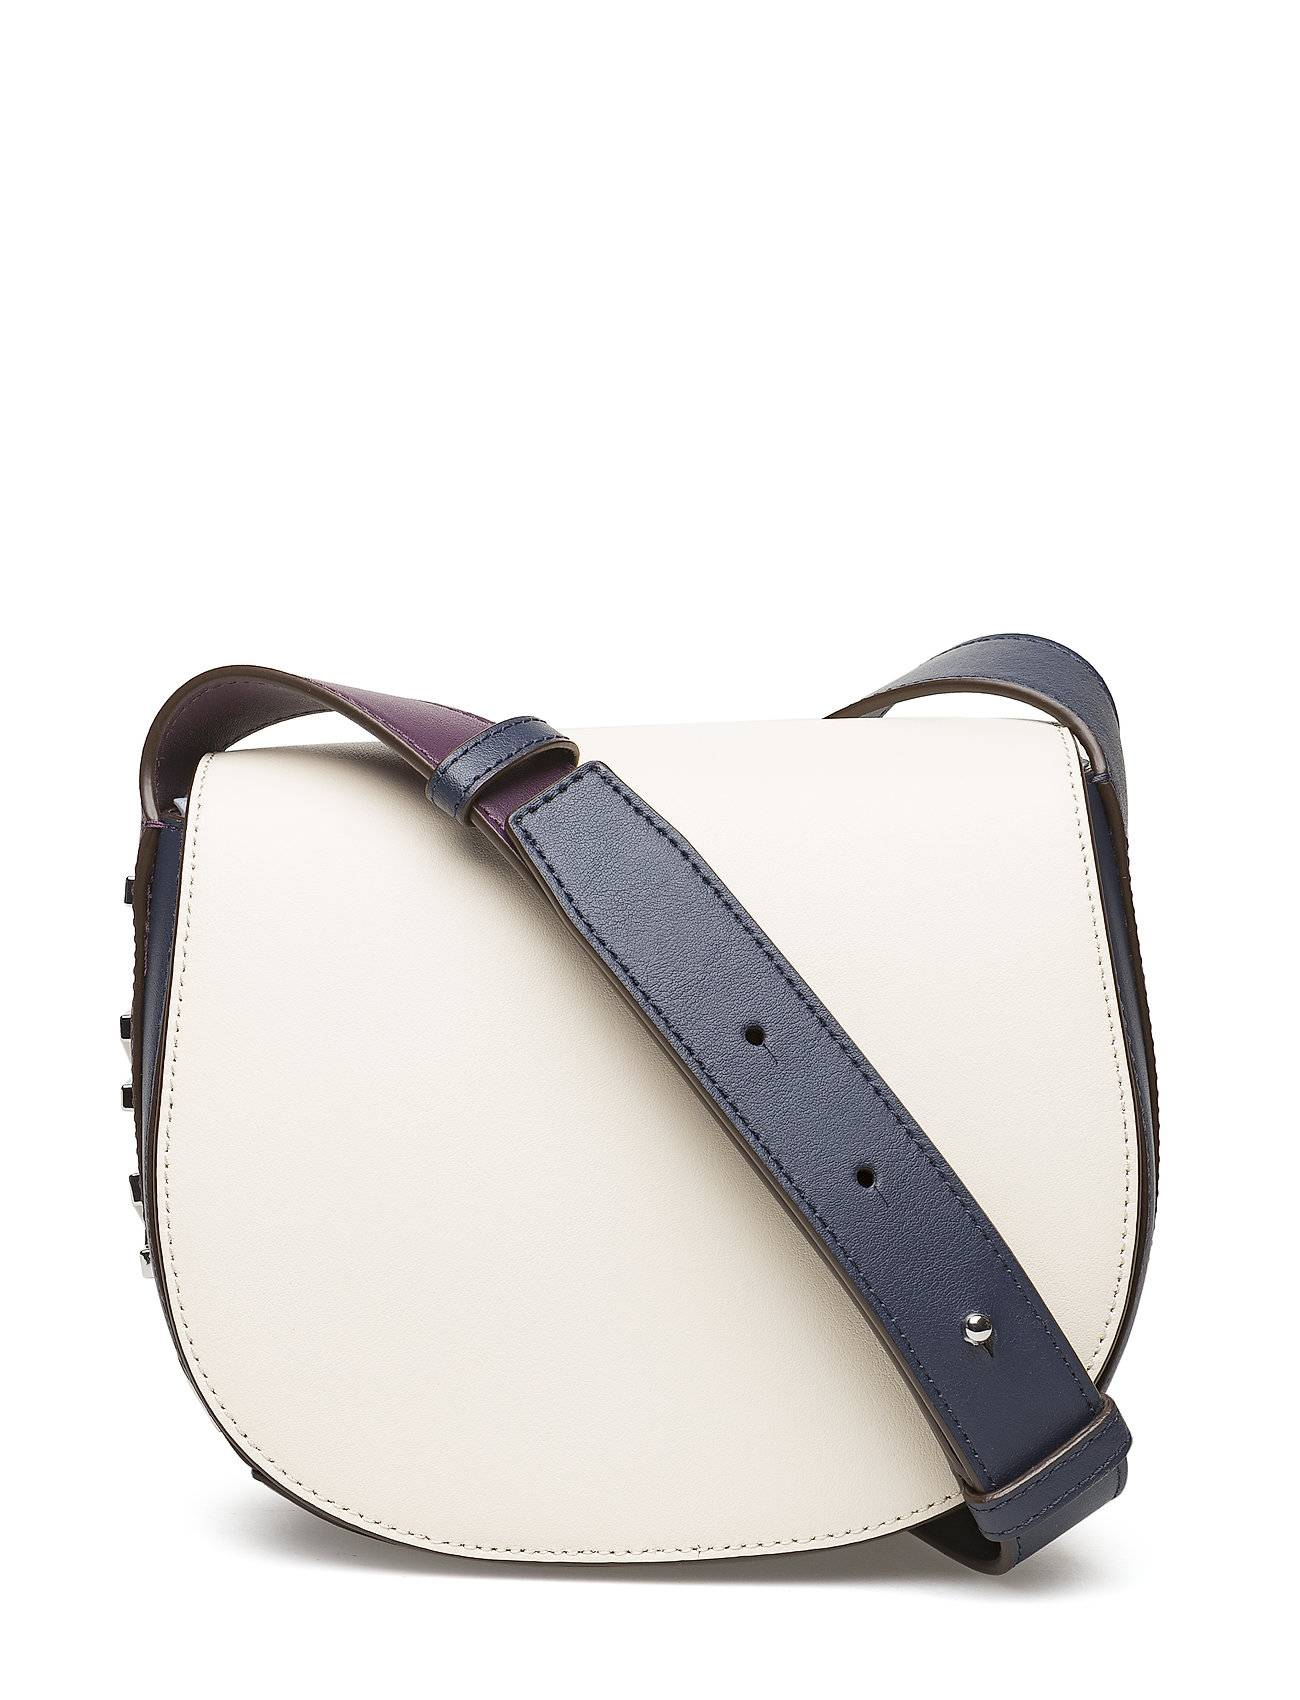 DKNY Bags Bedford- Saddle Cbod